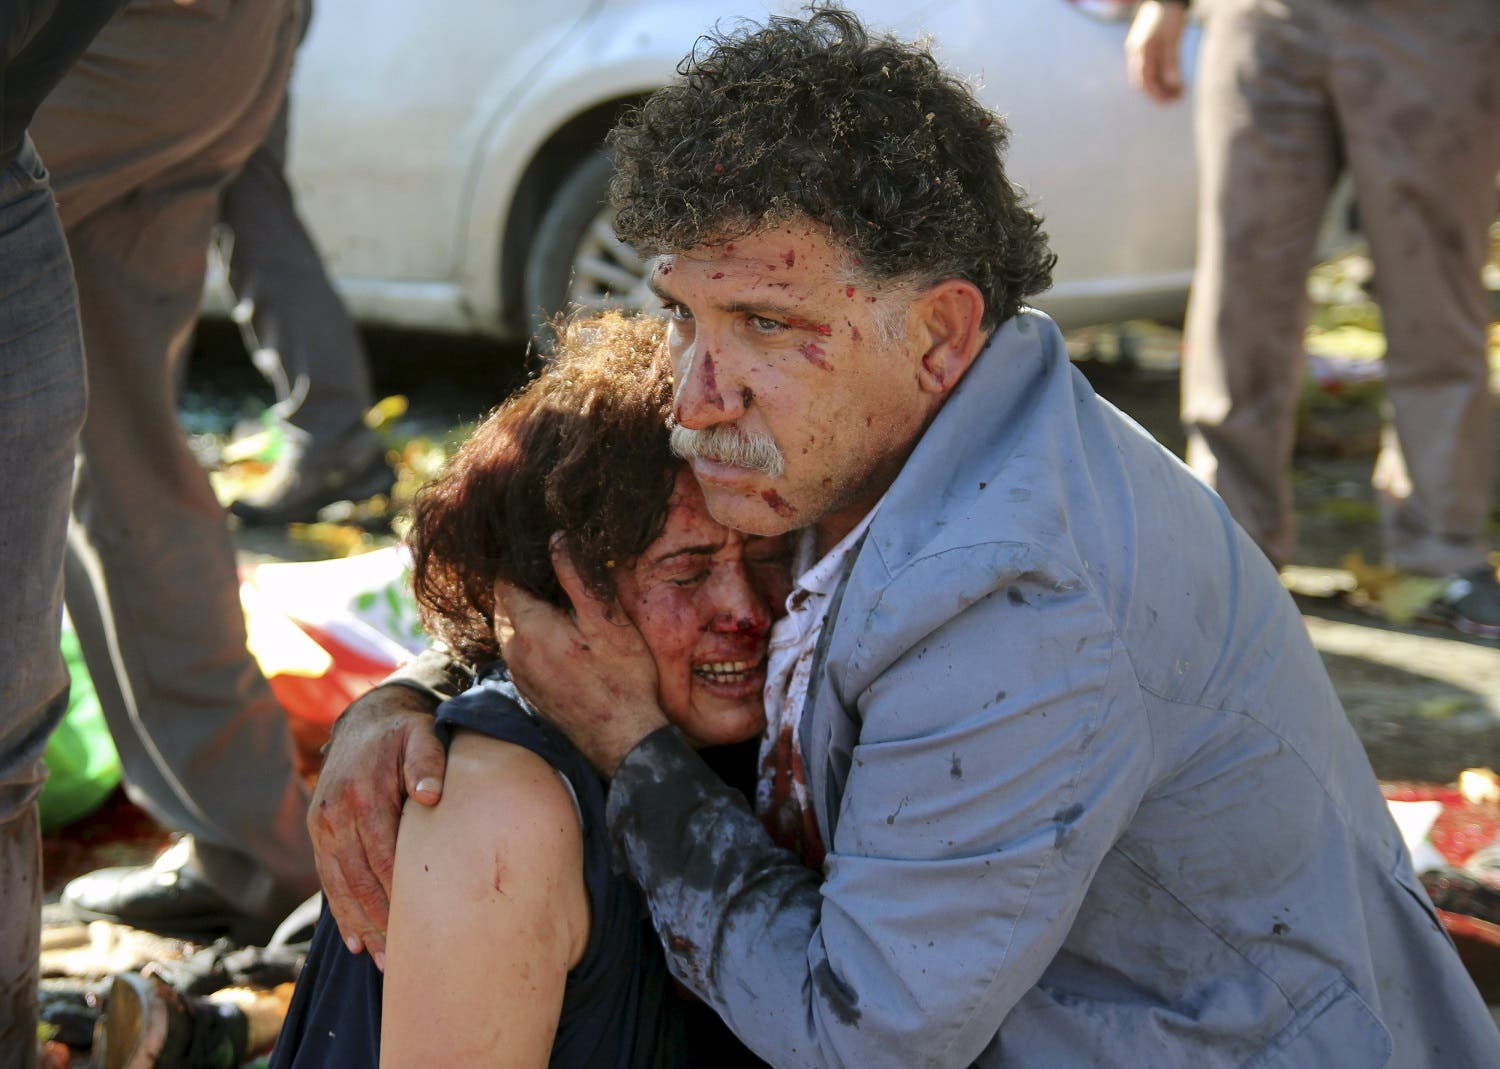 An injured man hugs an injured woman after an explosion during a peace march in Ankara. (Reuters)